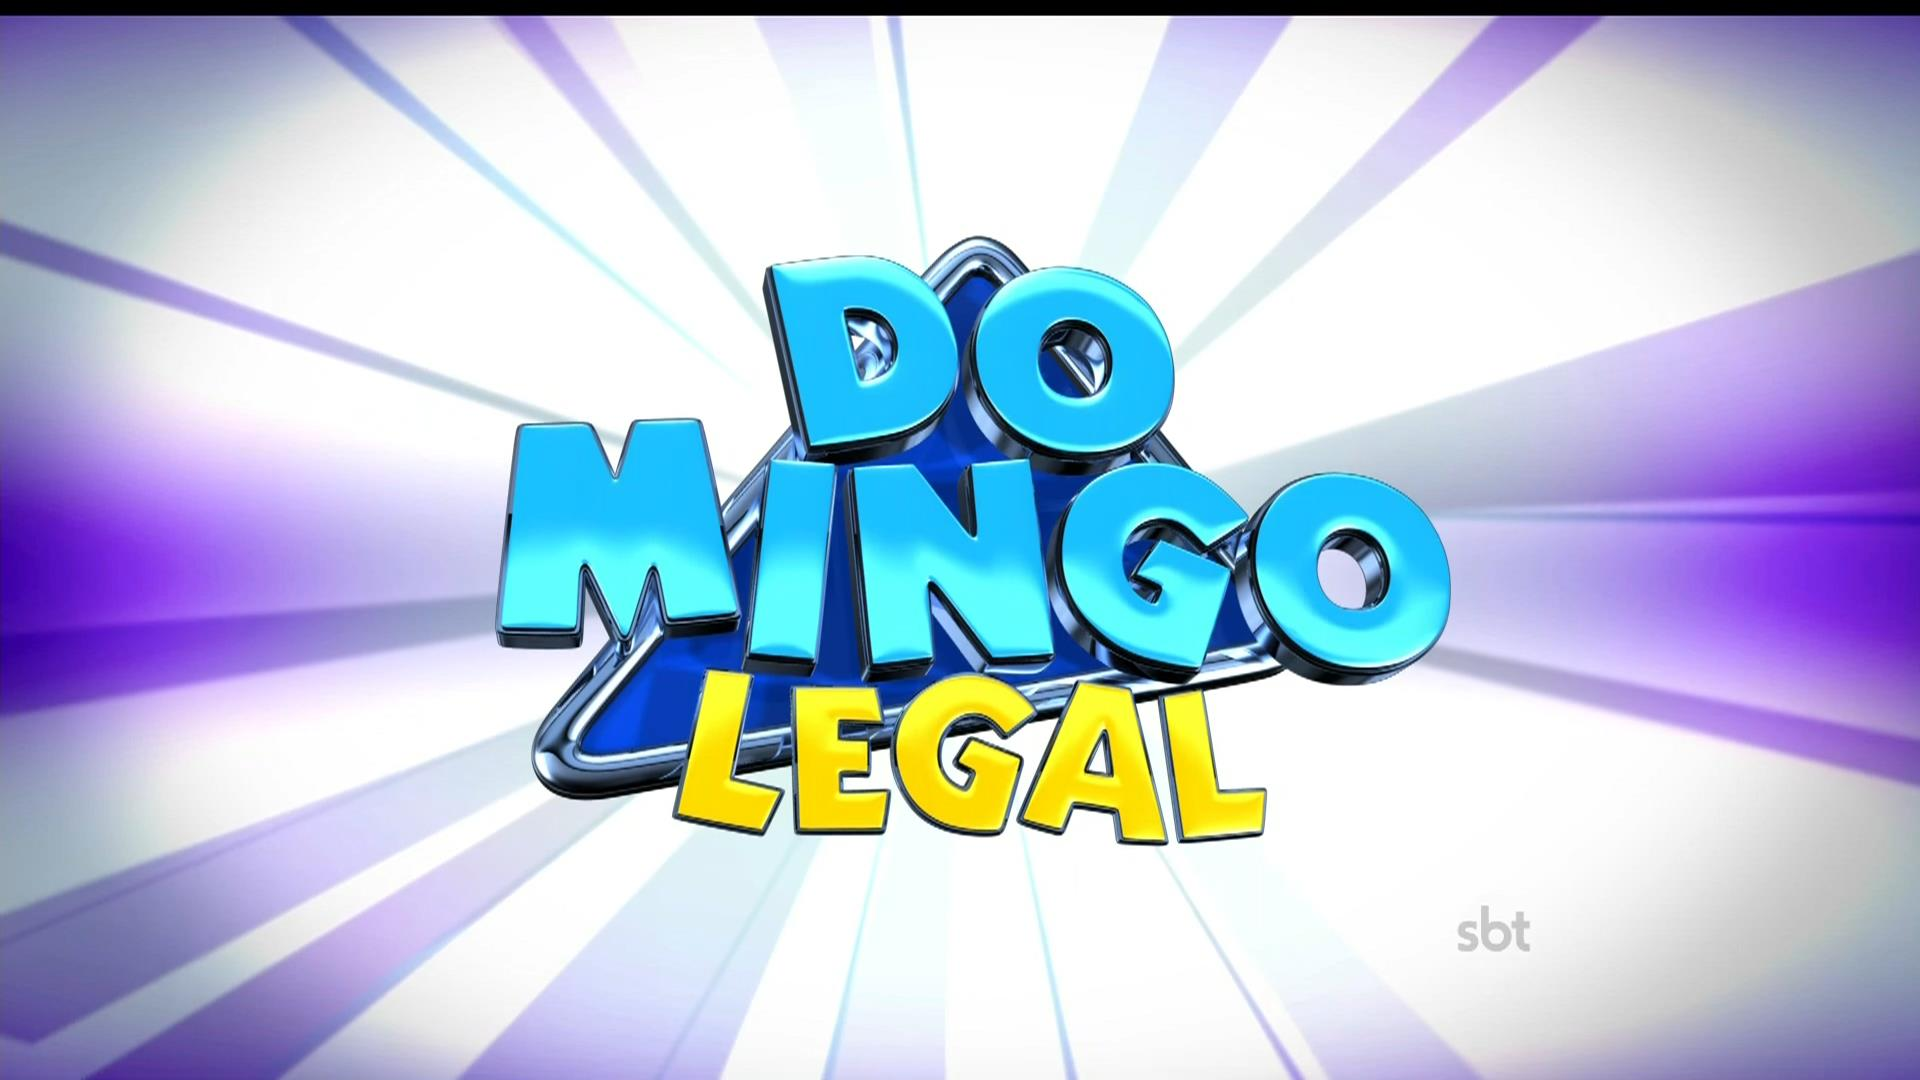 image of Domingo,Domingo, Domingo Legal